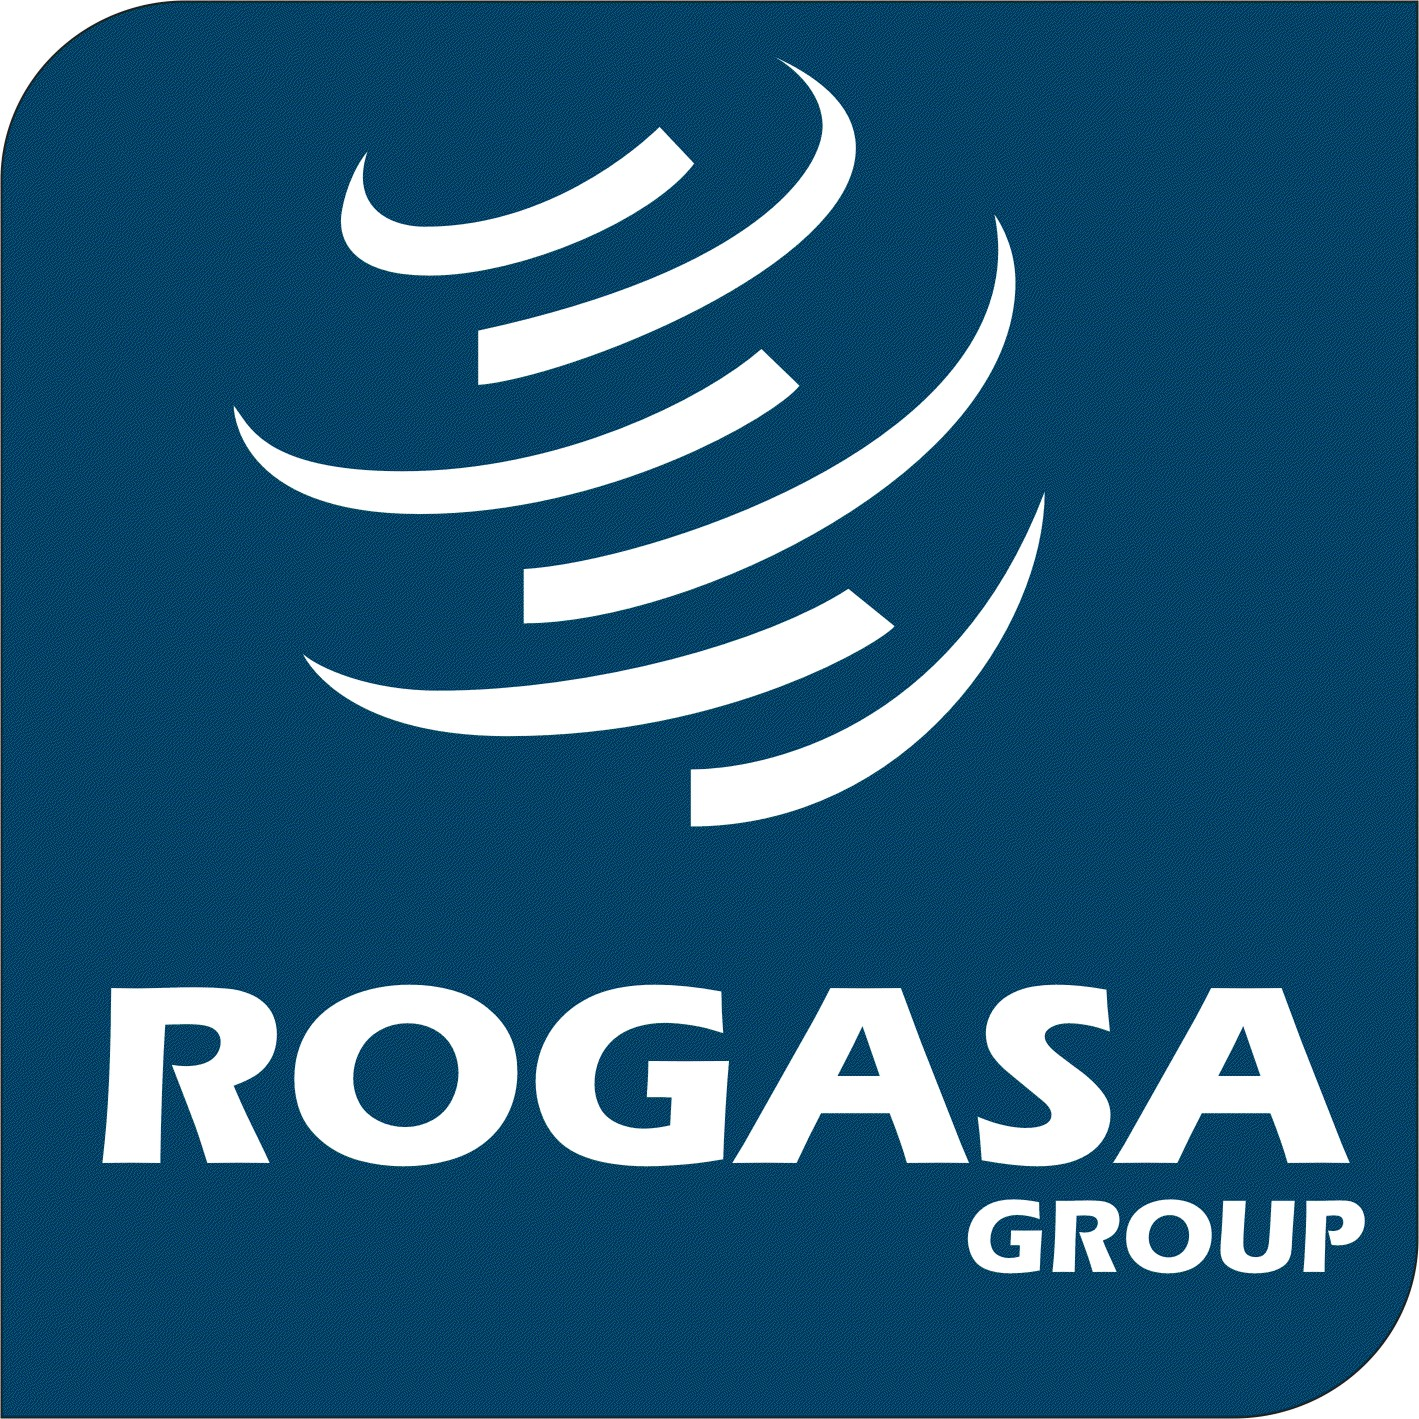 Rogasa Group